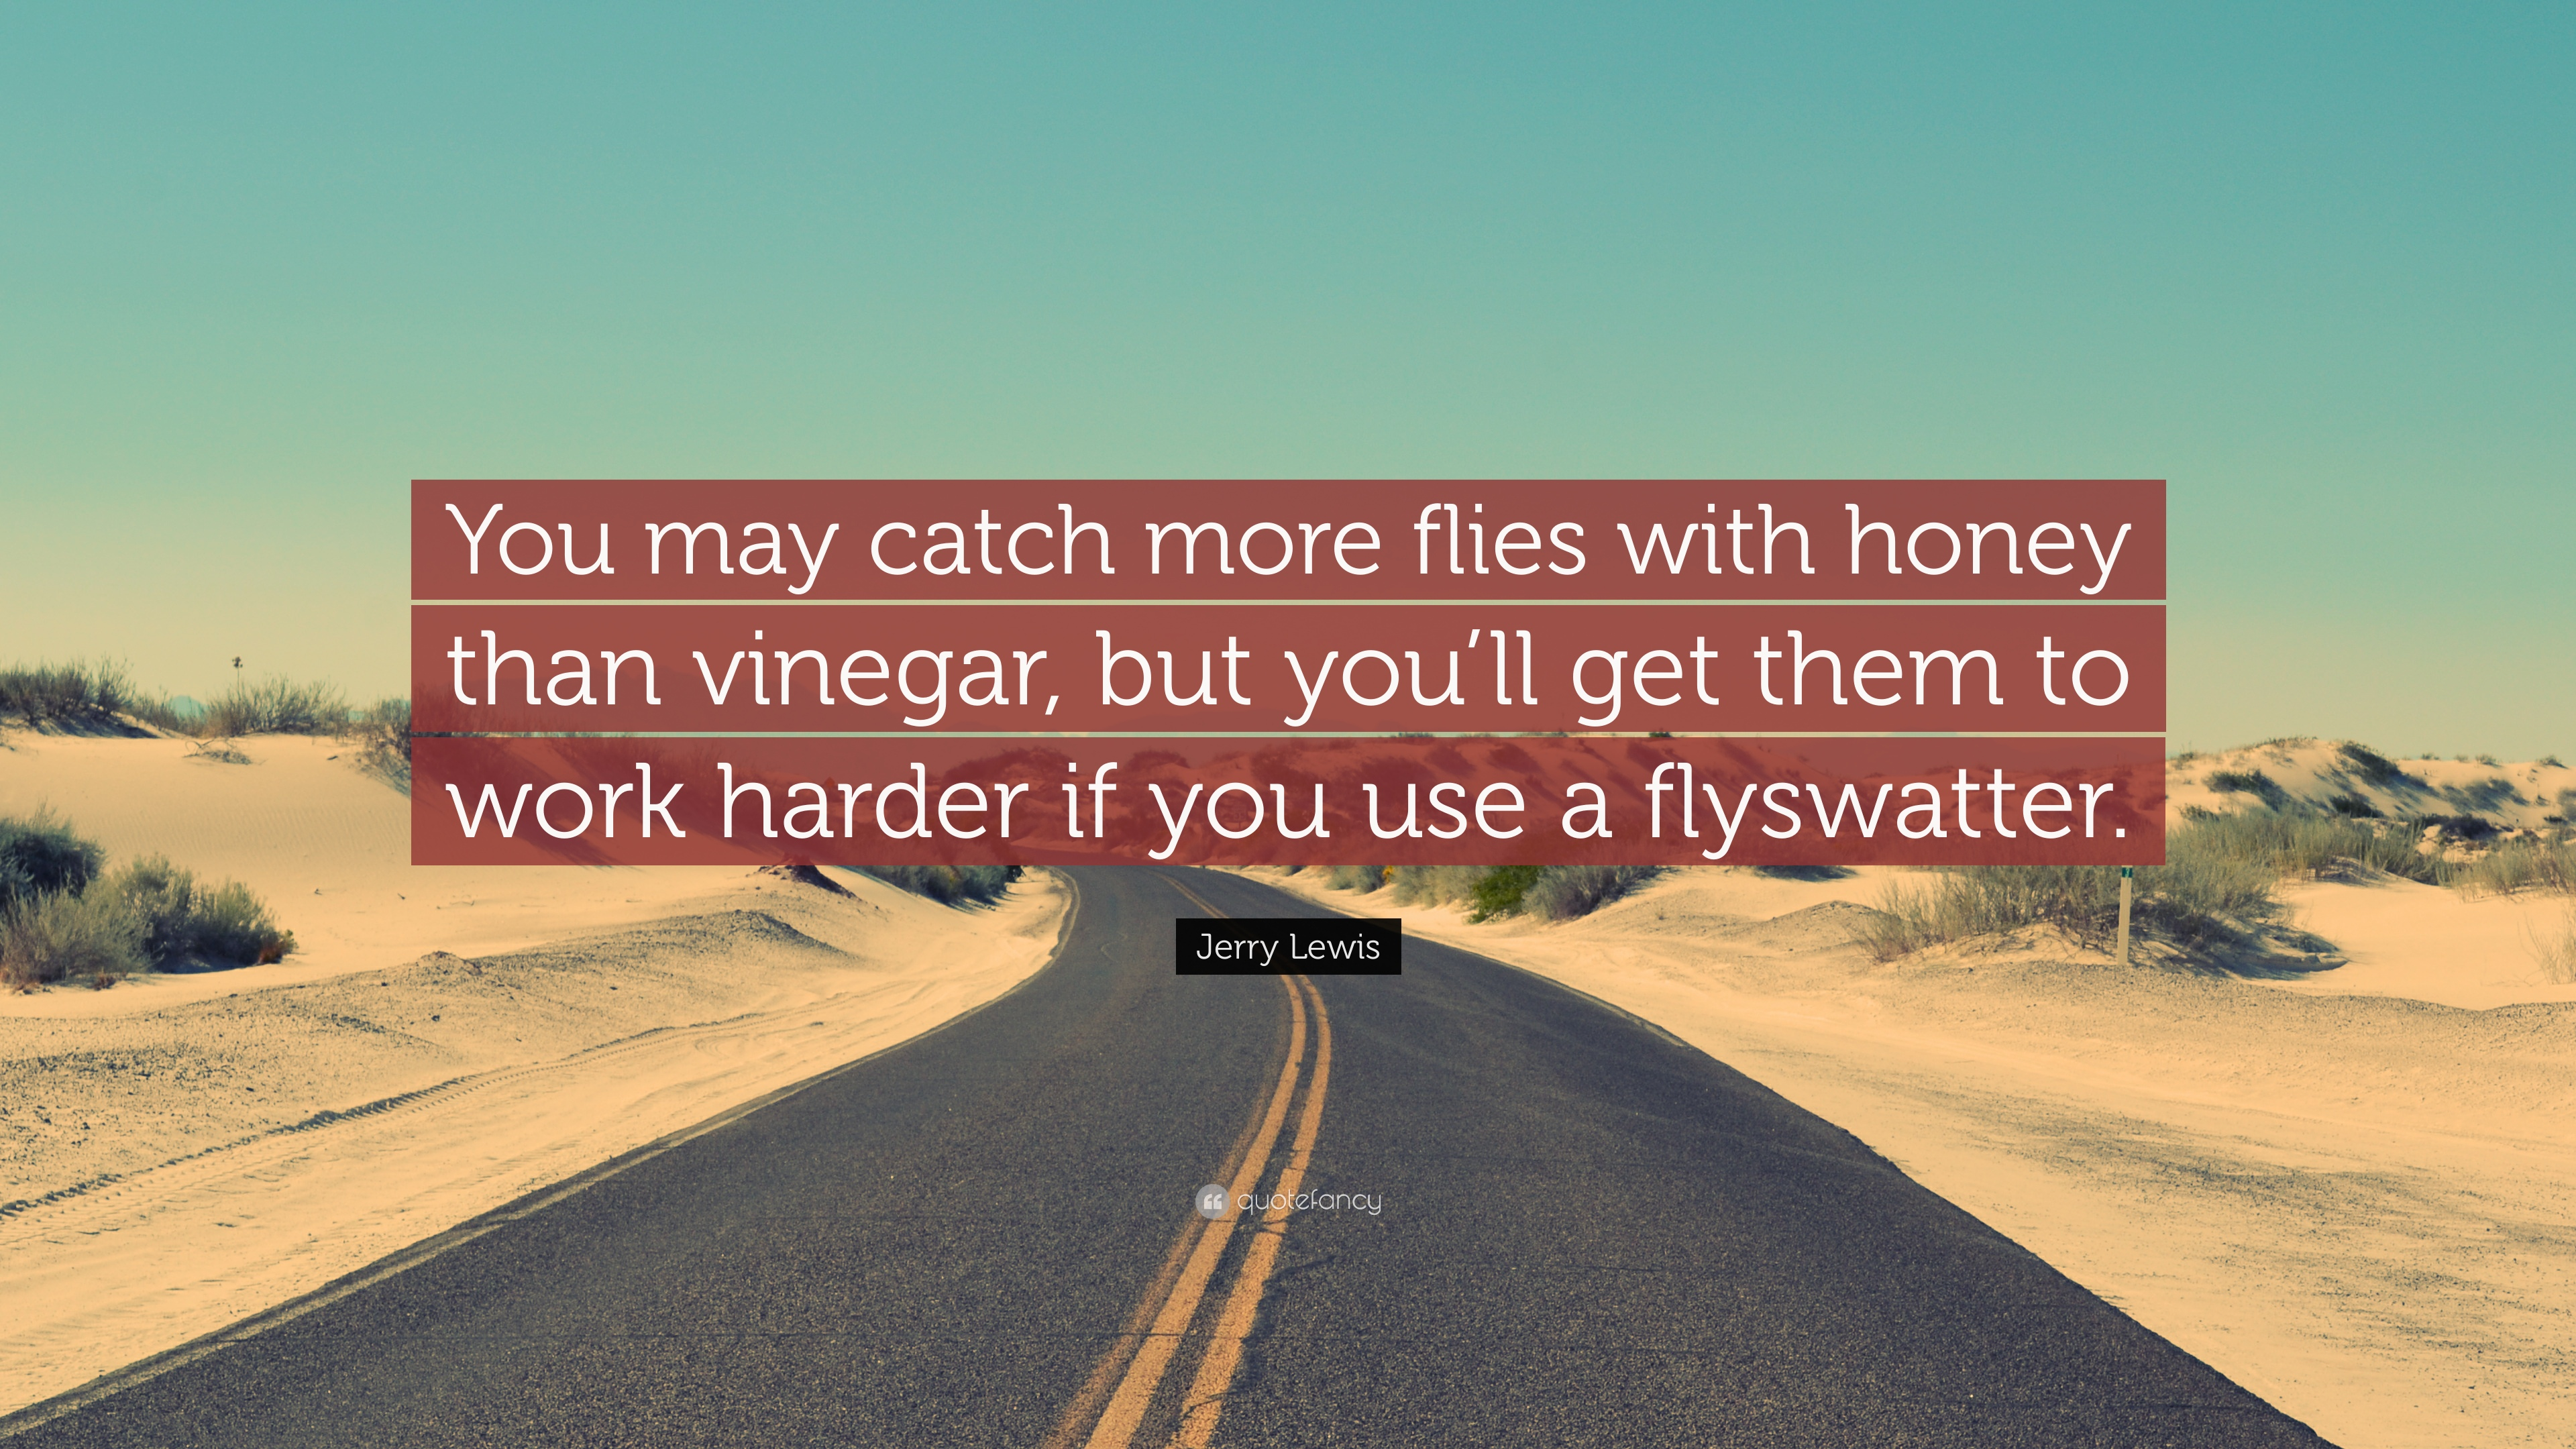 Image of: Honey Bees Jerry Lewis Quote you May Catch More Flies With Honey Than Vinegar But Quotefancy Jerry Lewis Quote you May Catch More Flies With Honey Than Vinegar